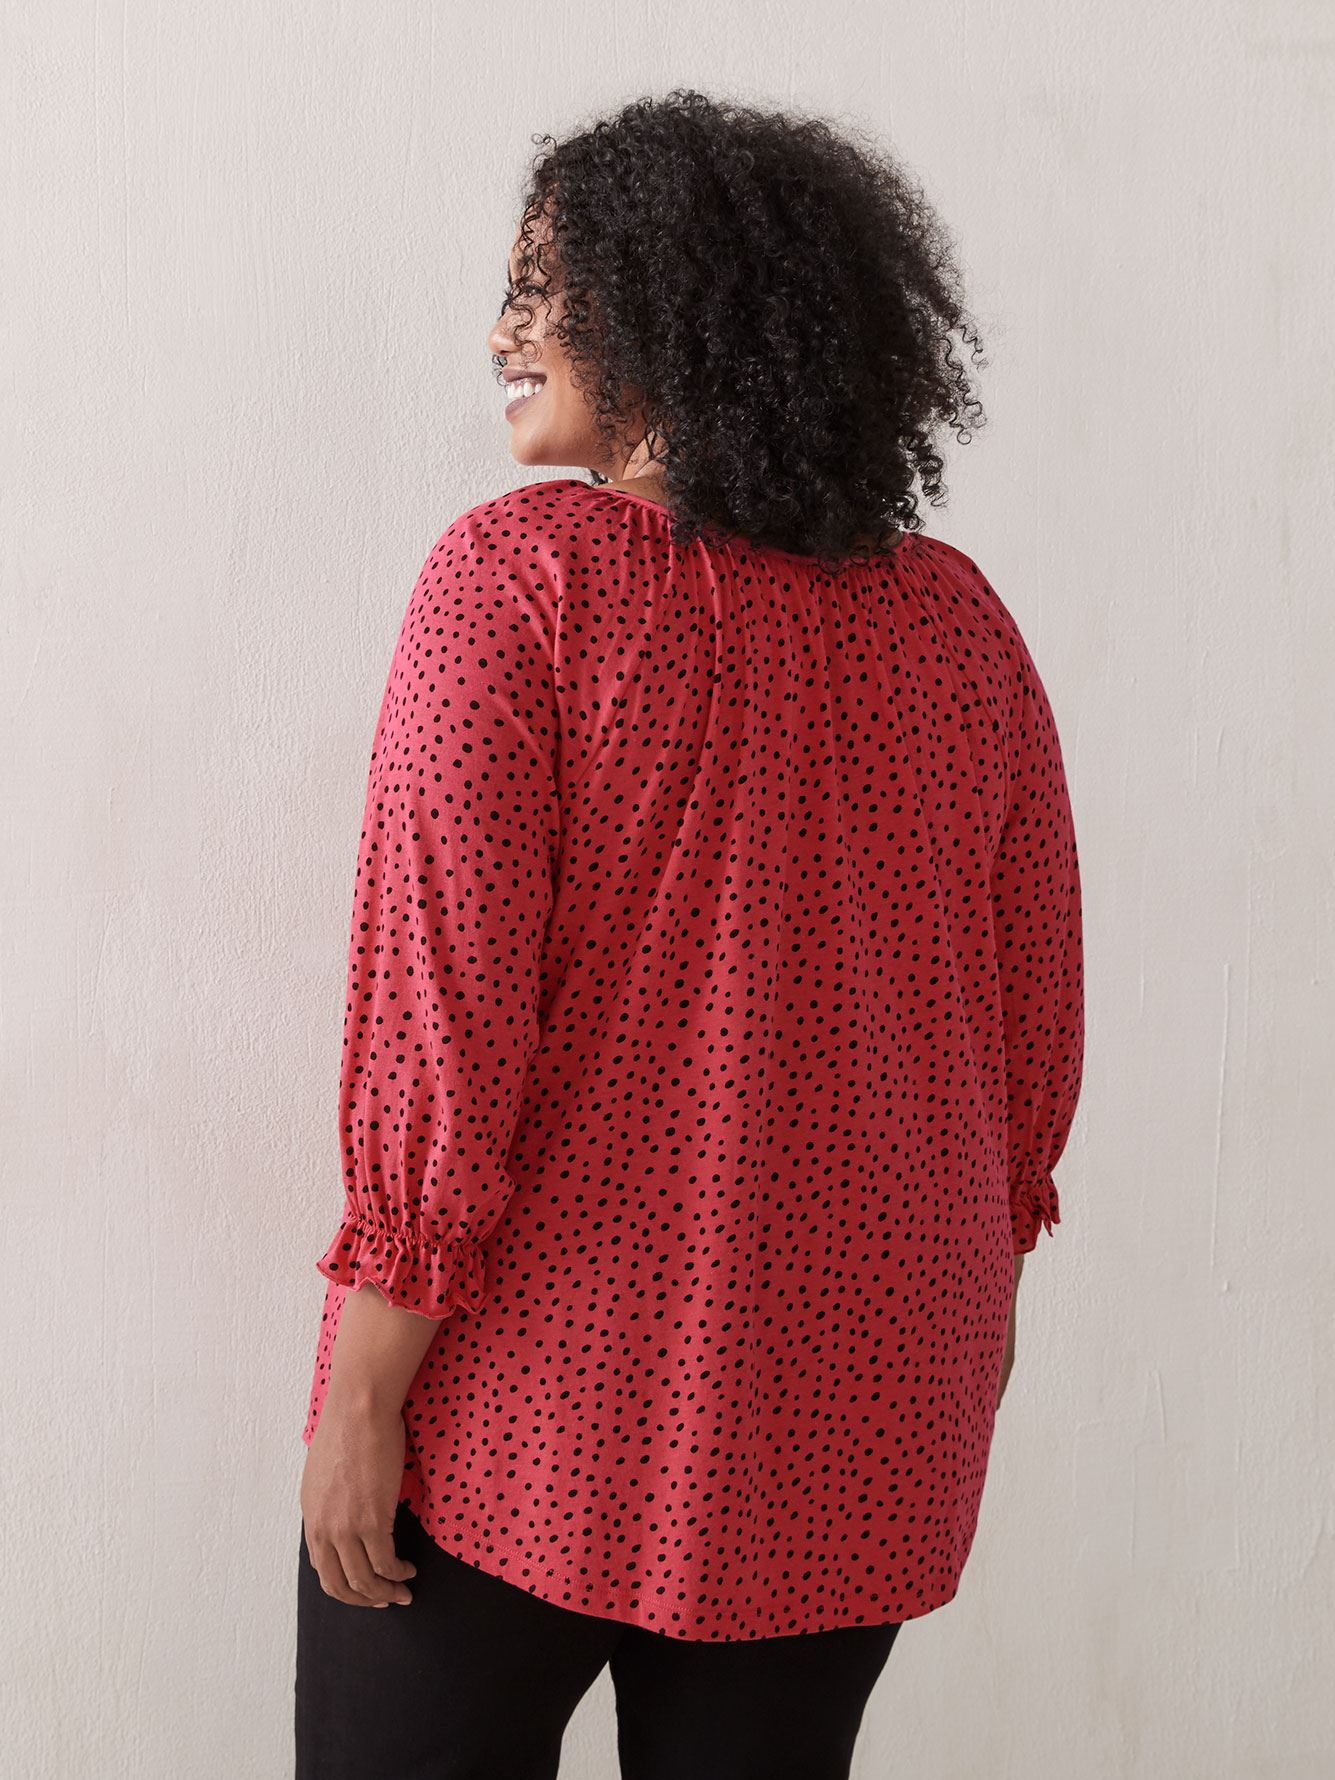 3/4 Balloon Sleeve Printed Top - In Every Story